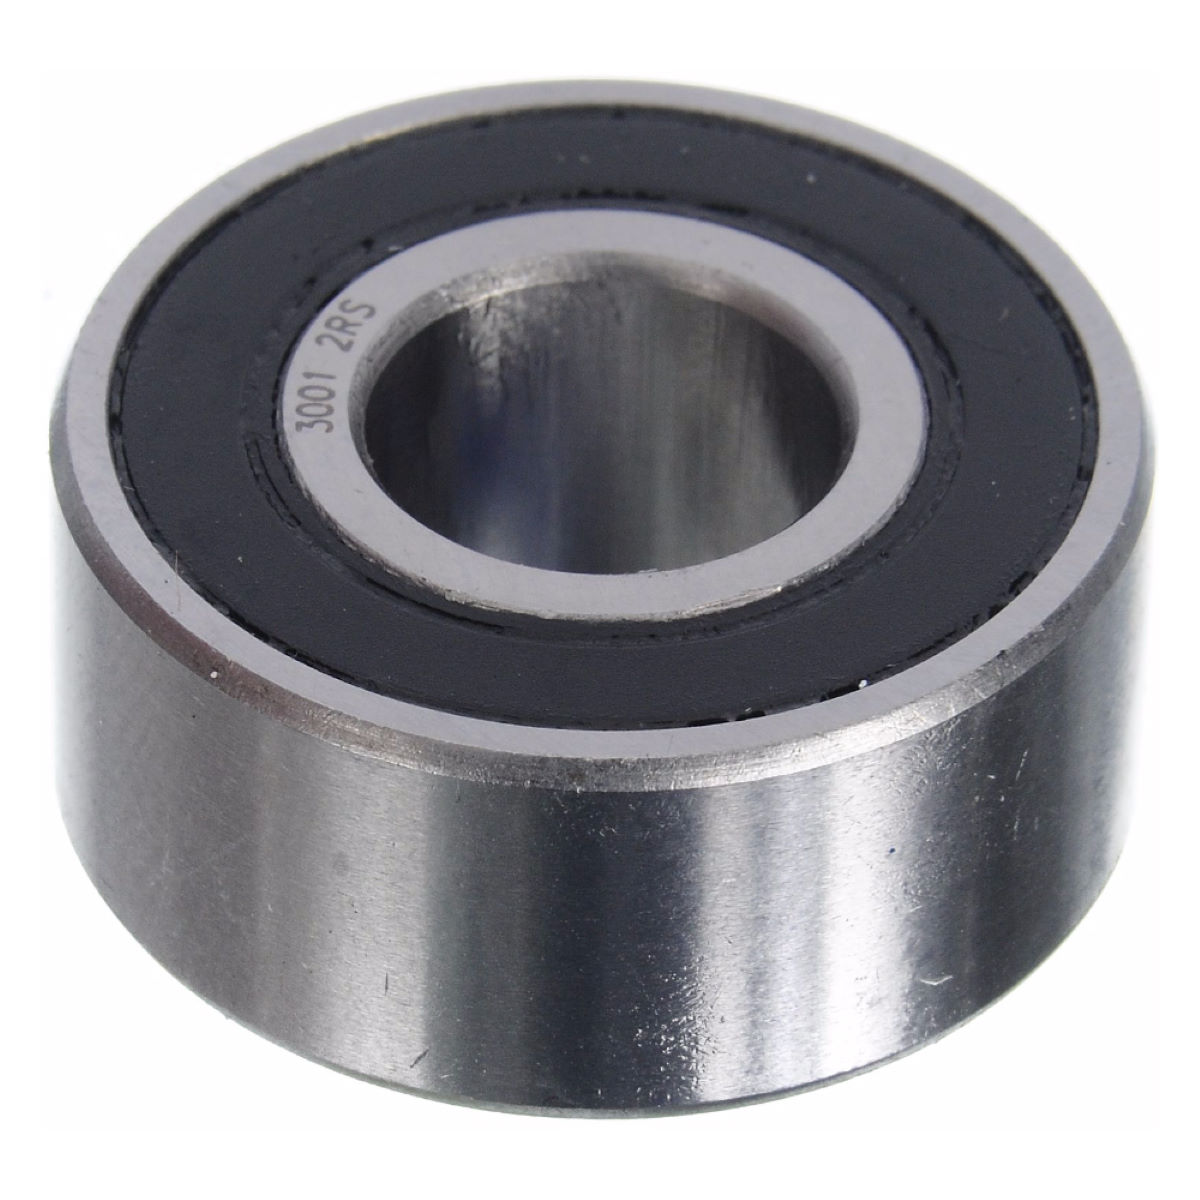 Brand-X Brand-X Sealed Bearing - 3001 2RS Bearing   Wheel Hub Spares